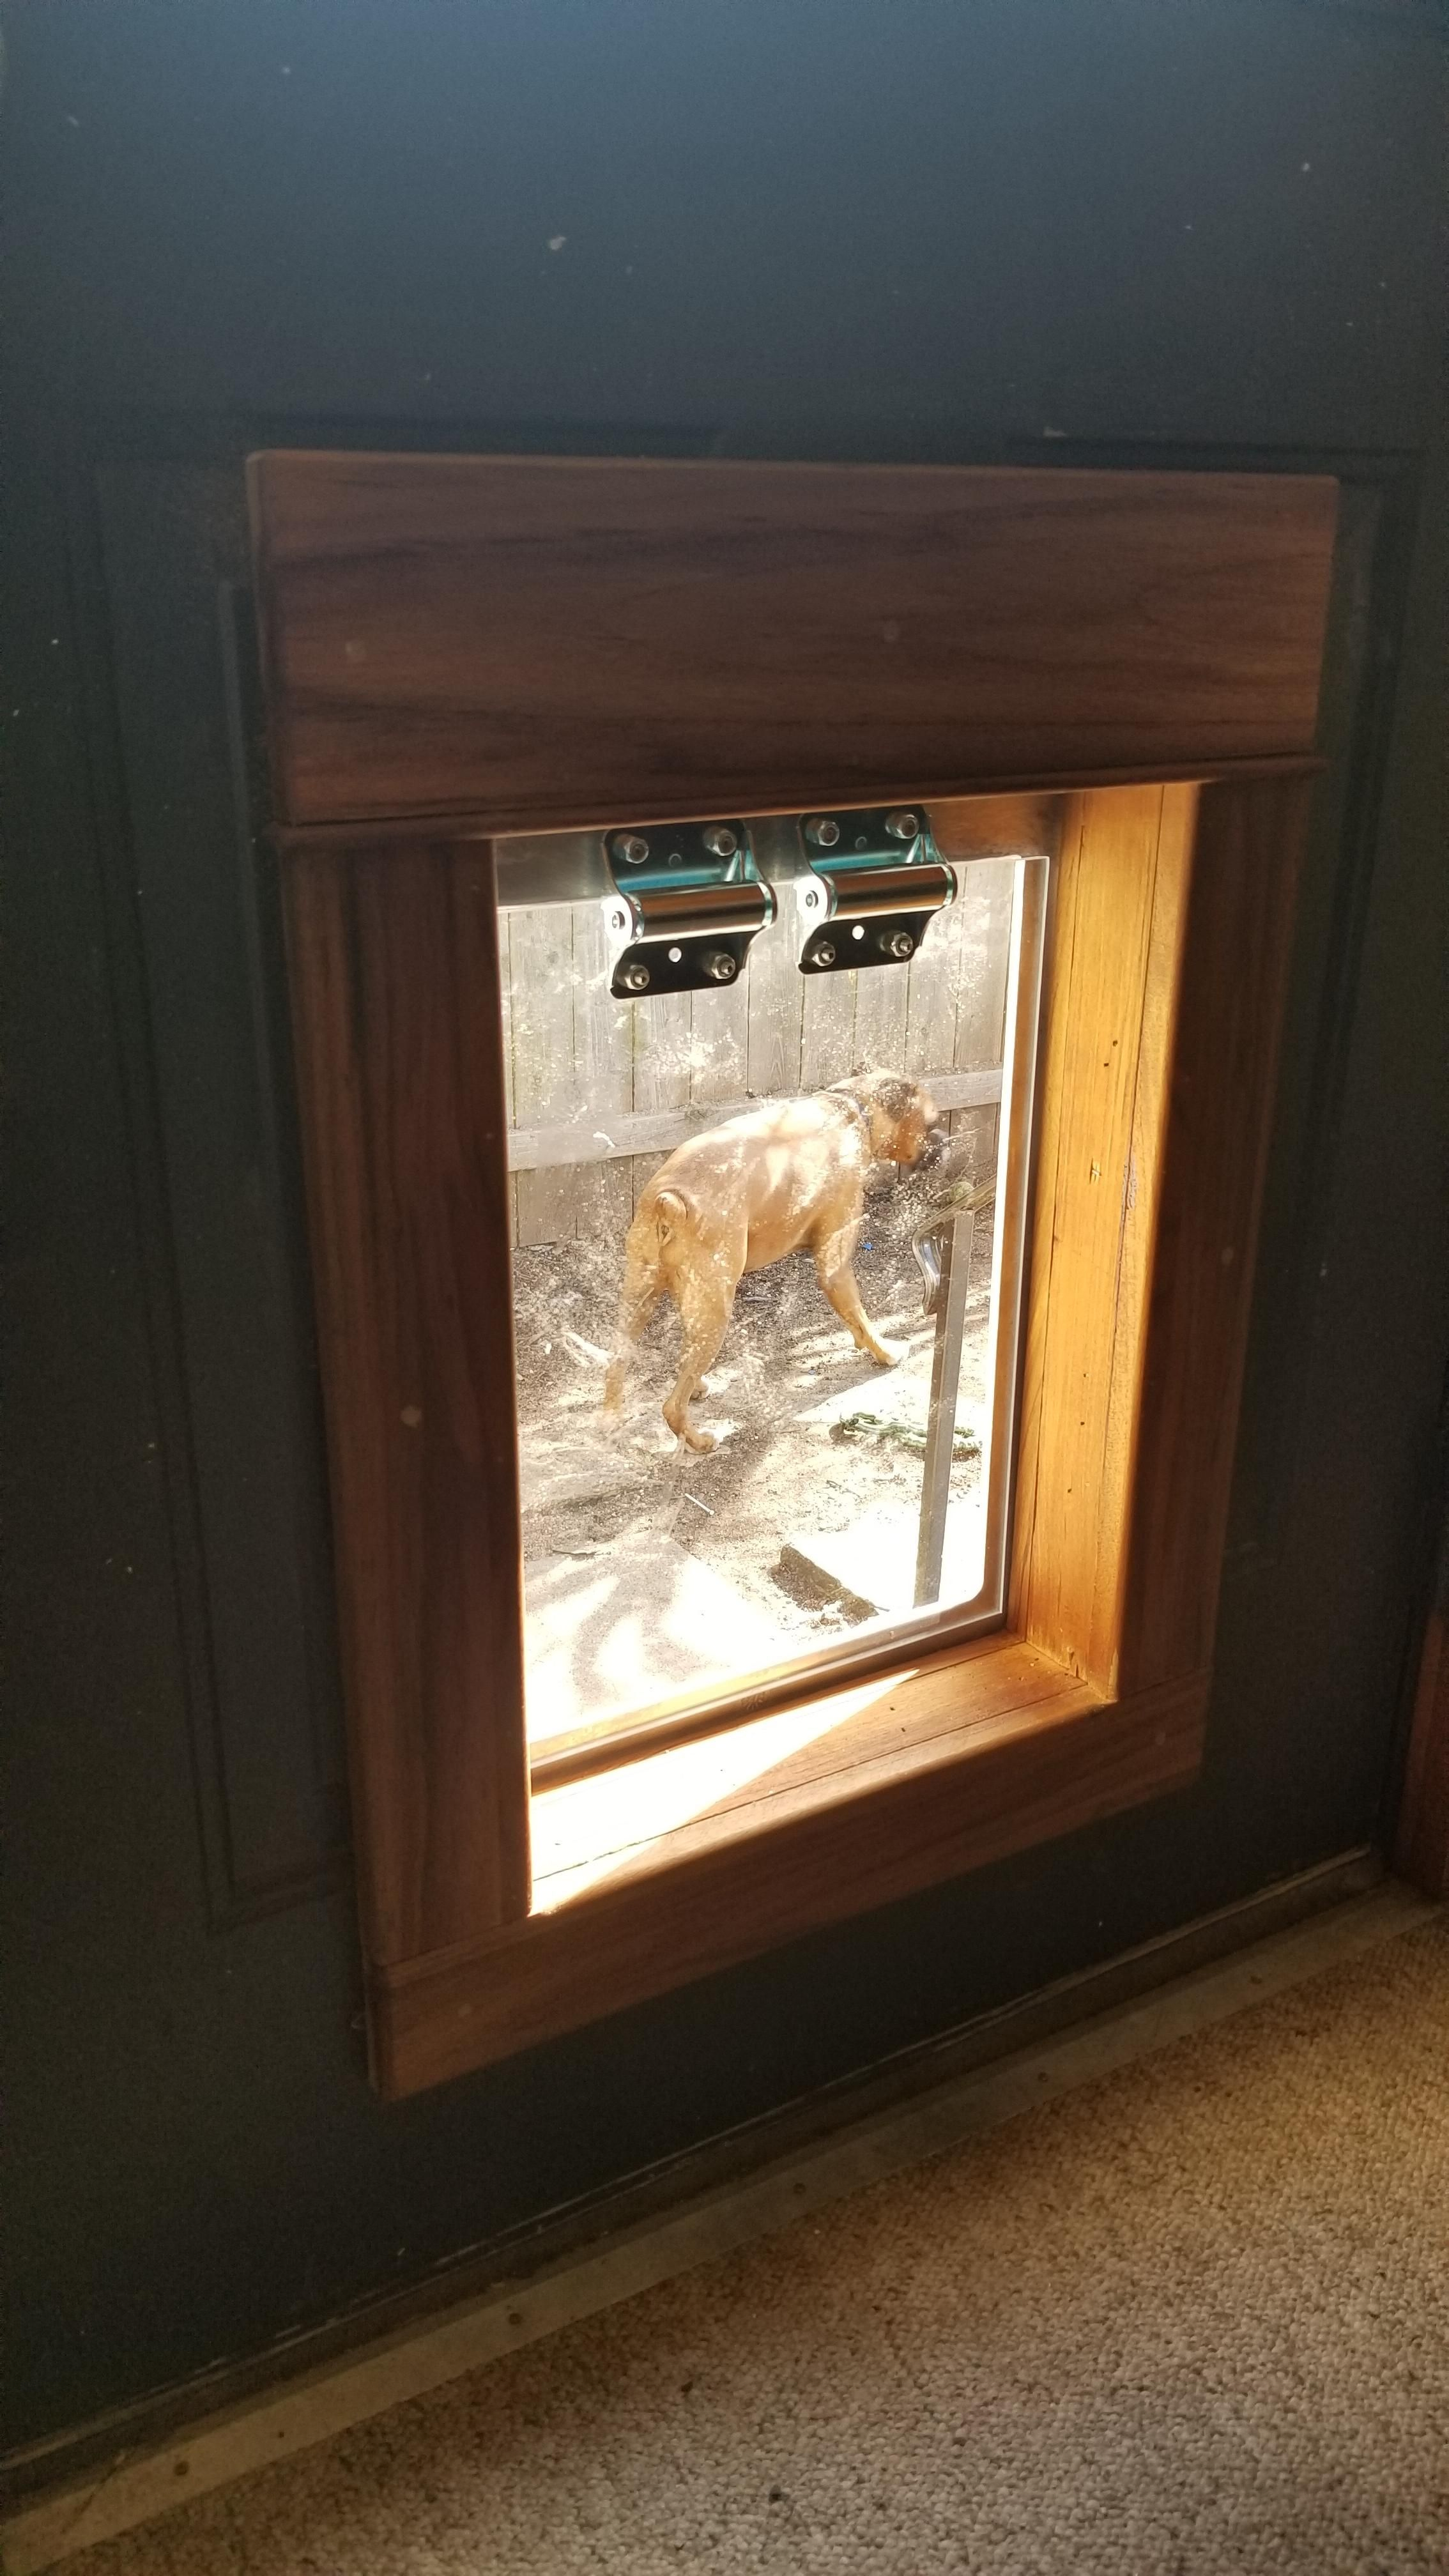 This Is A Dog Door That I Made Out Of An Indestructible Dog Flap